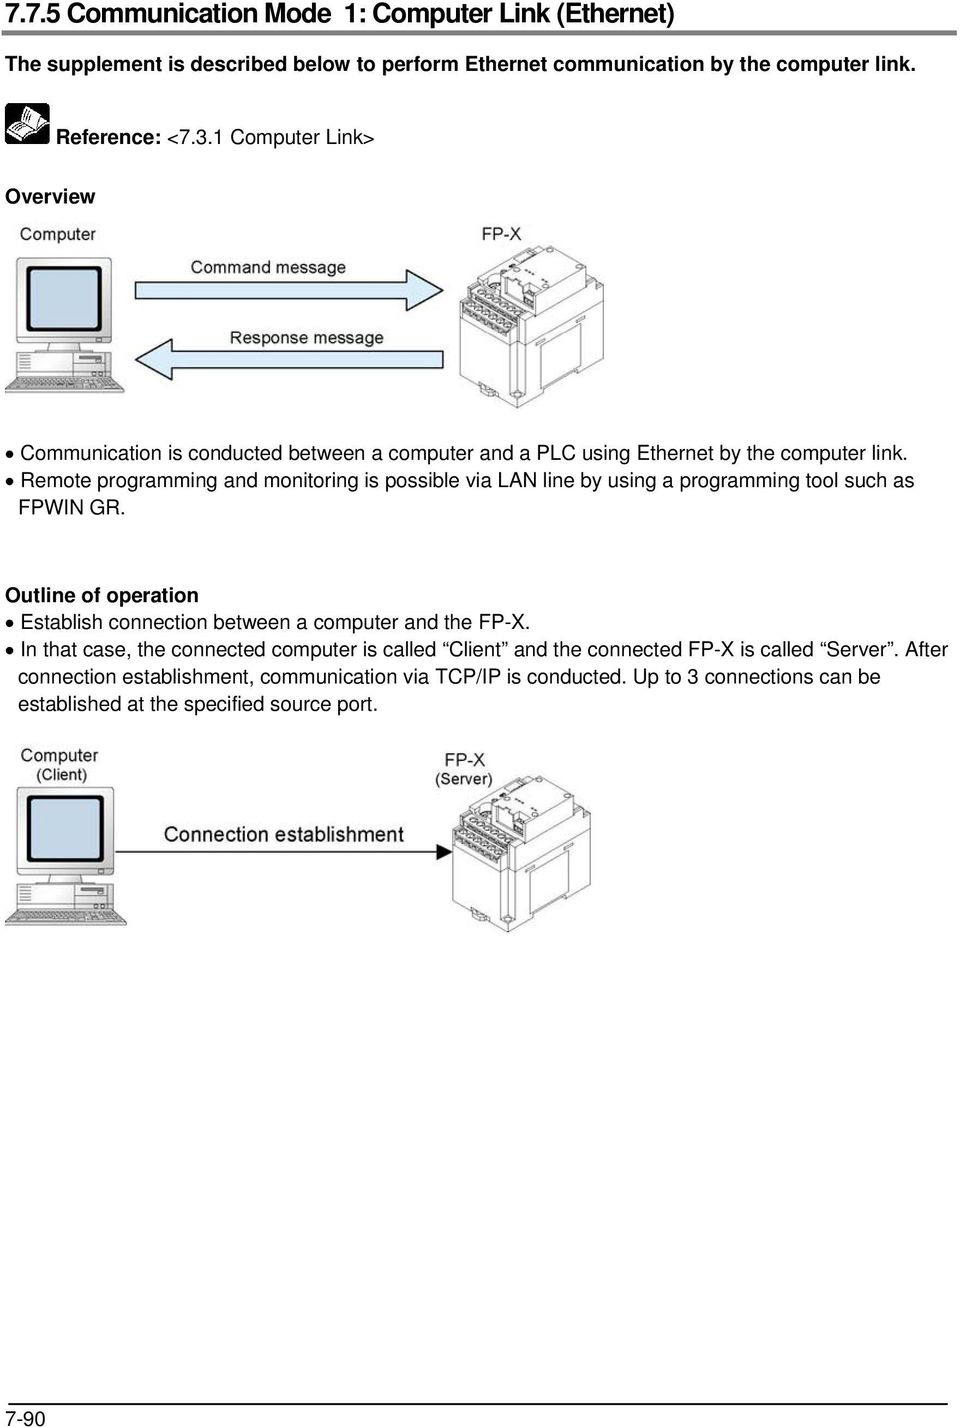 Remote programming and monitoring is possible via LAN line by using a programming tool such as FPWIN GR.